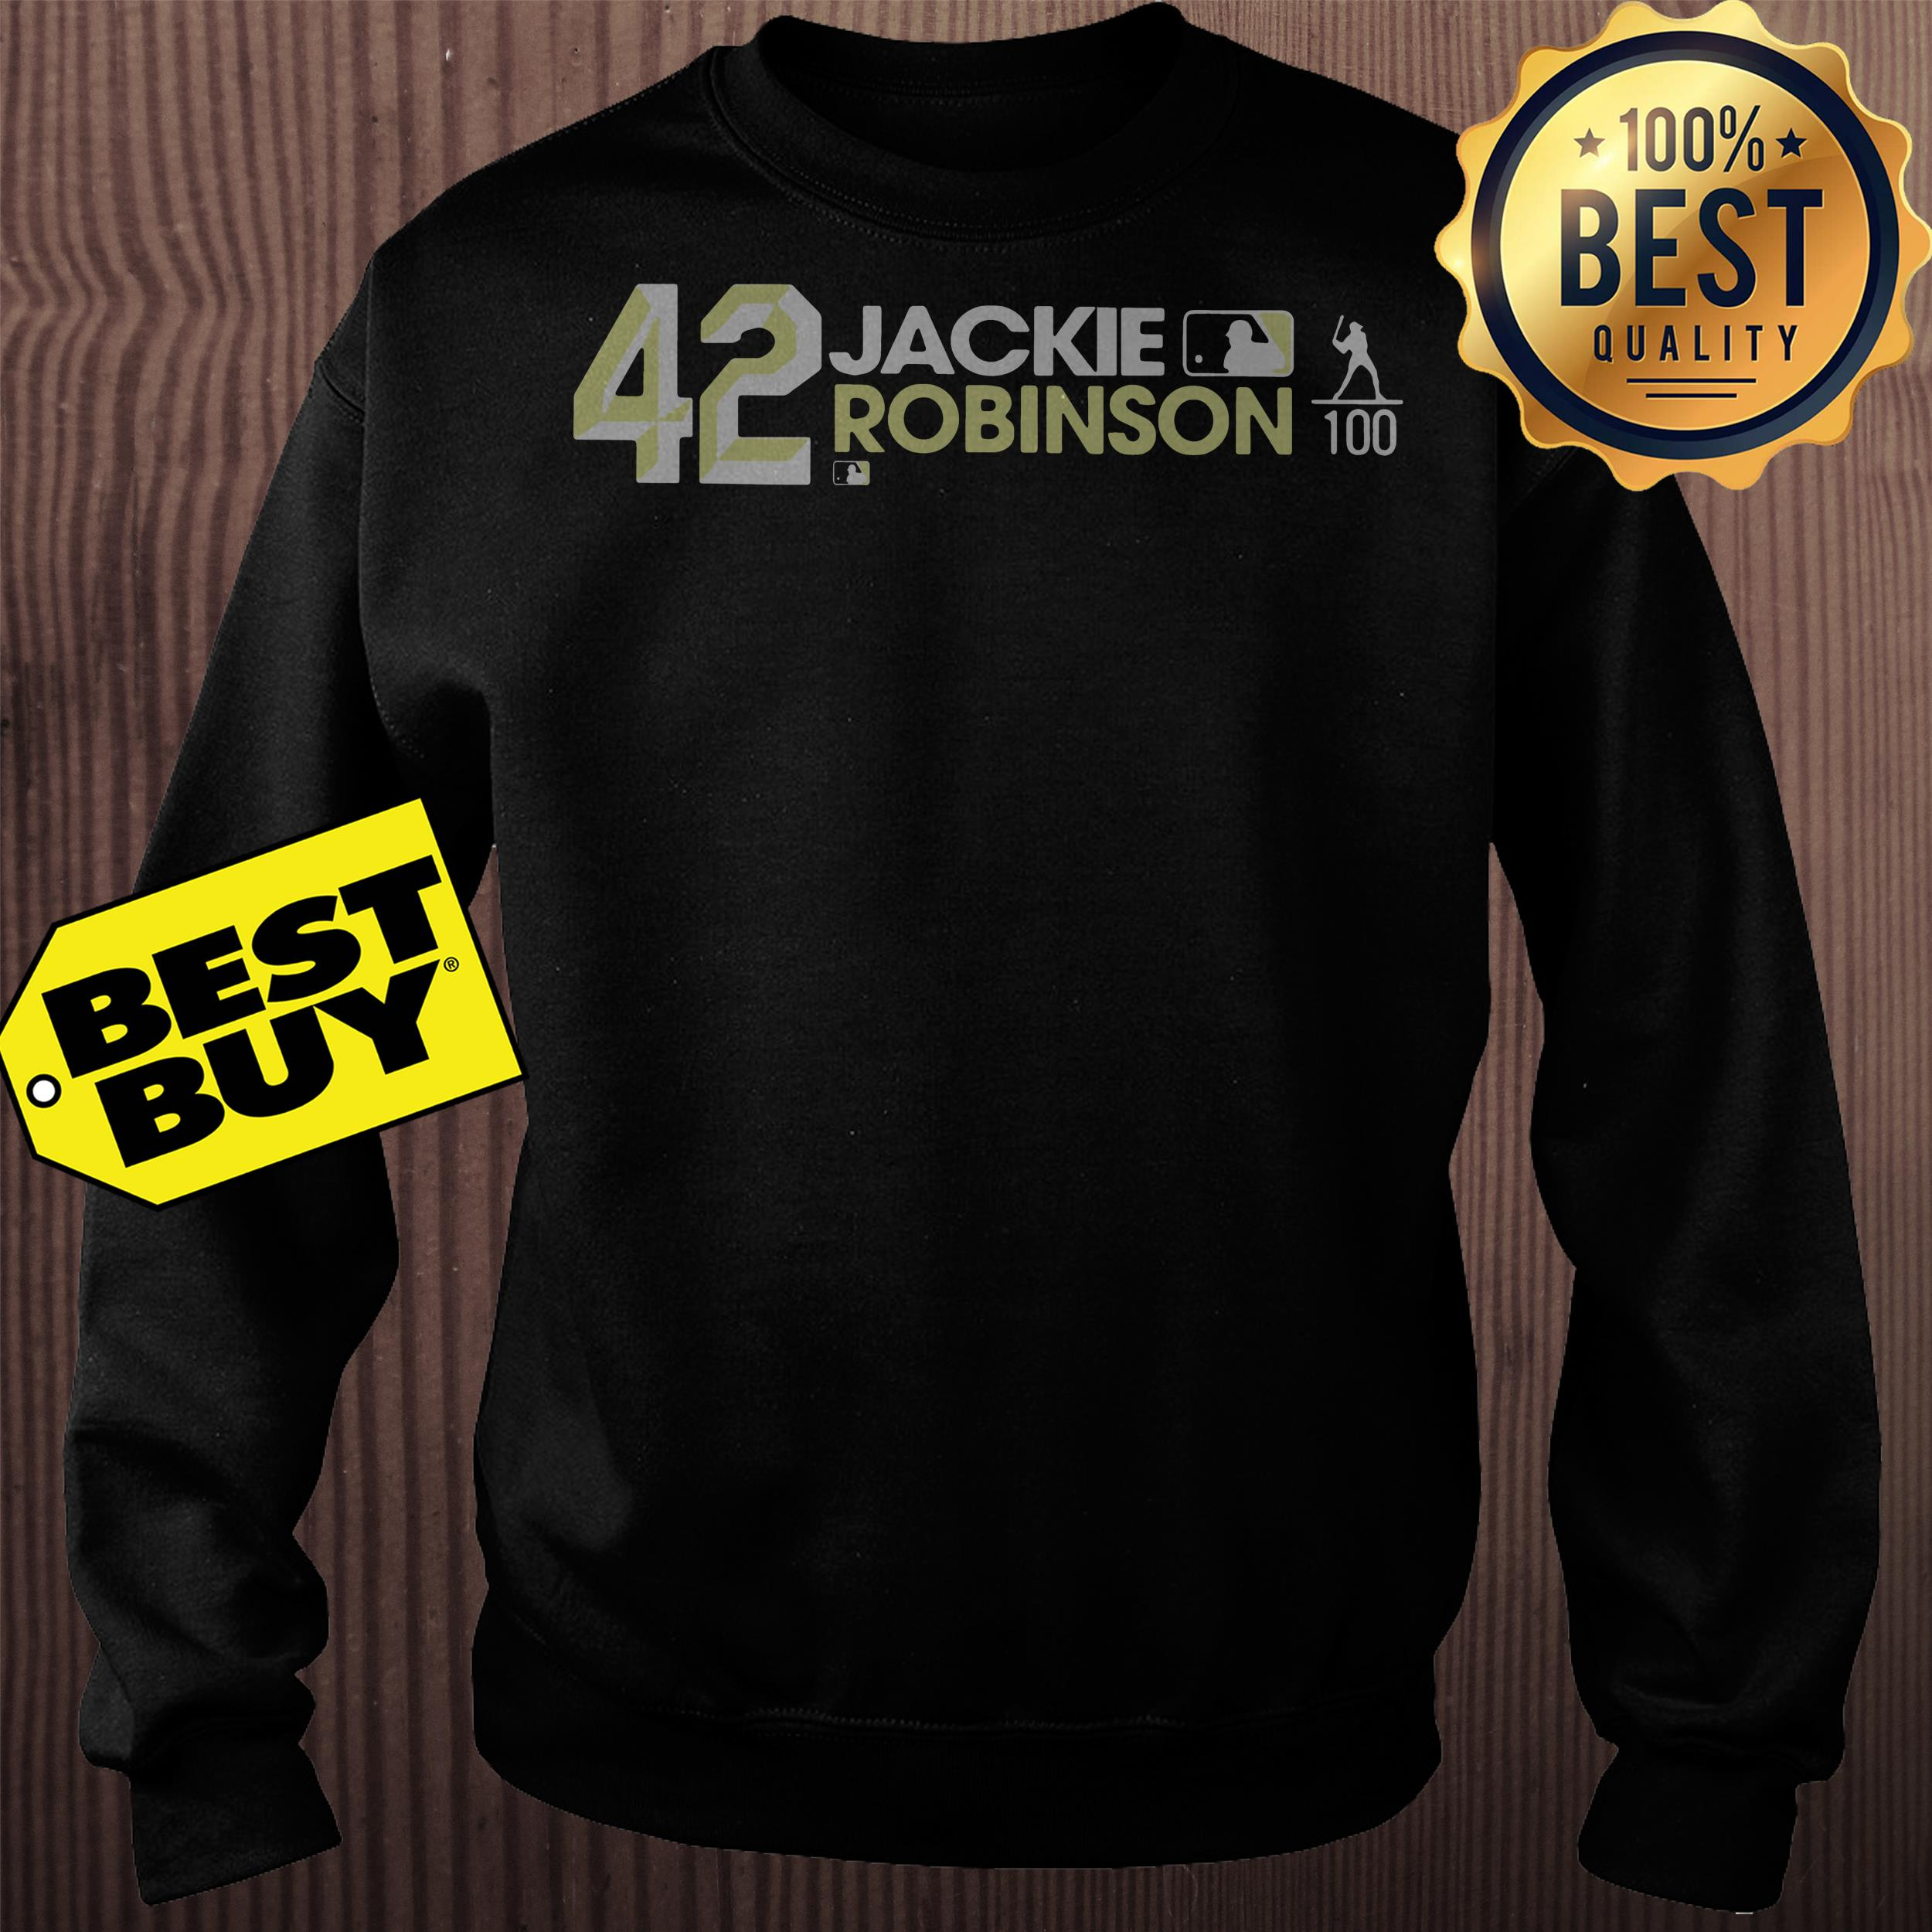 Jackie Robinson 42 Los Angeles Dodgers Sweatshirt